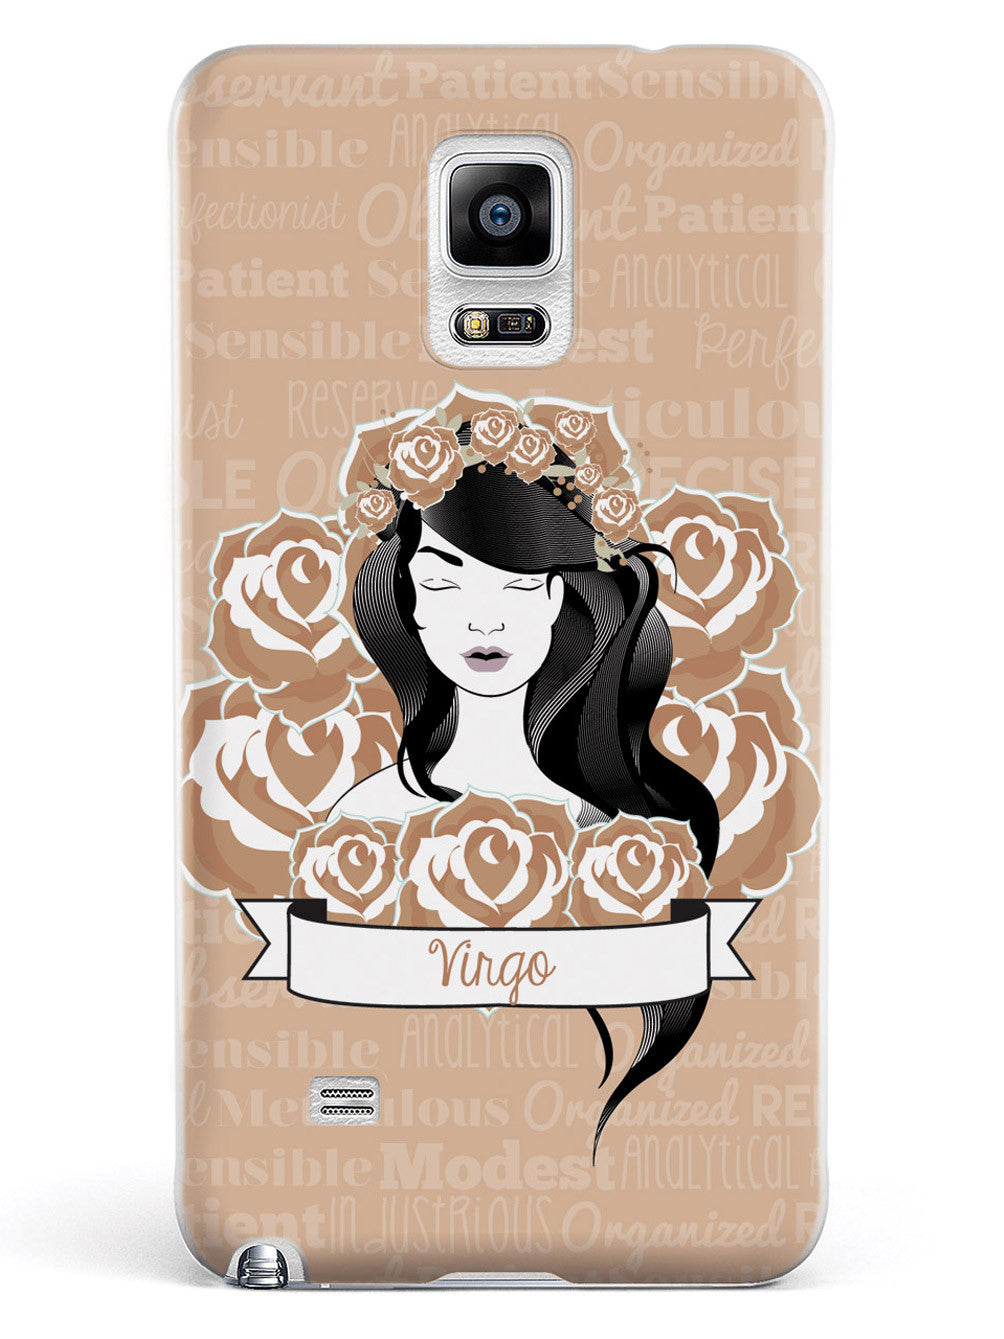 Zodiac Sign - Virgo Case